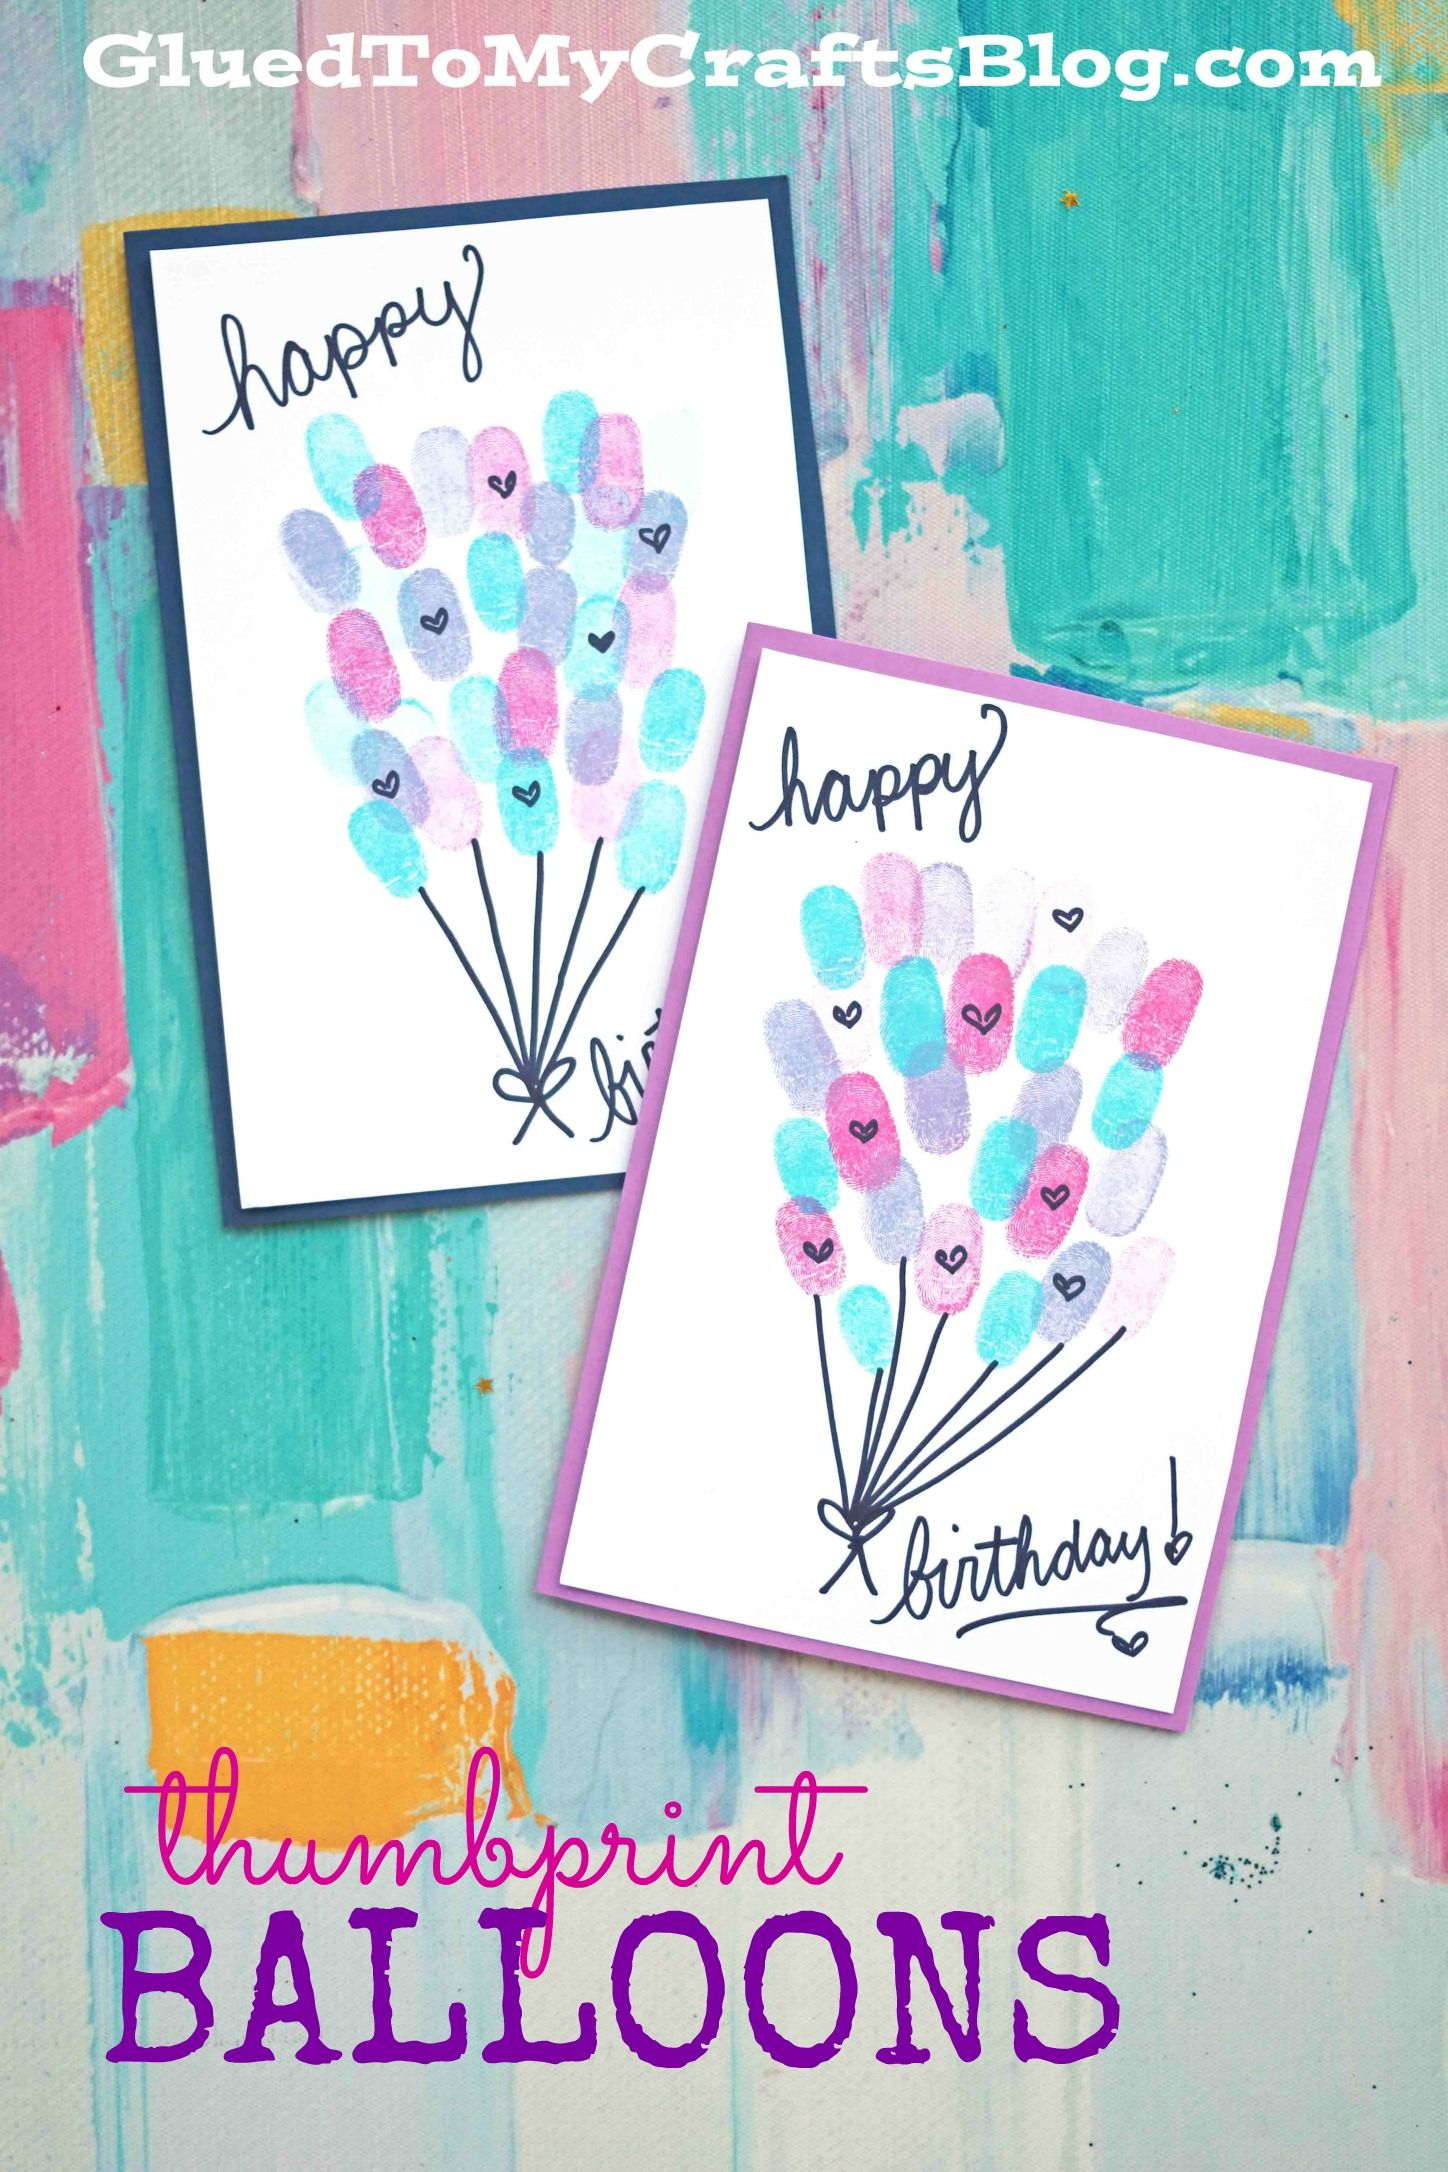 thumbprint birthday balloons card idea for kids to make in